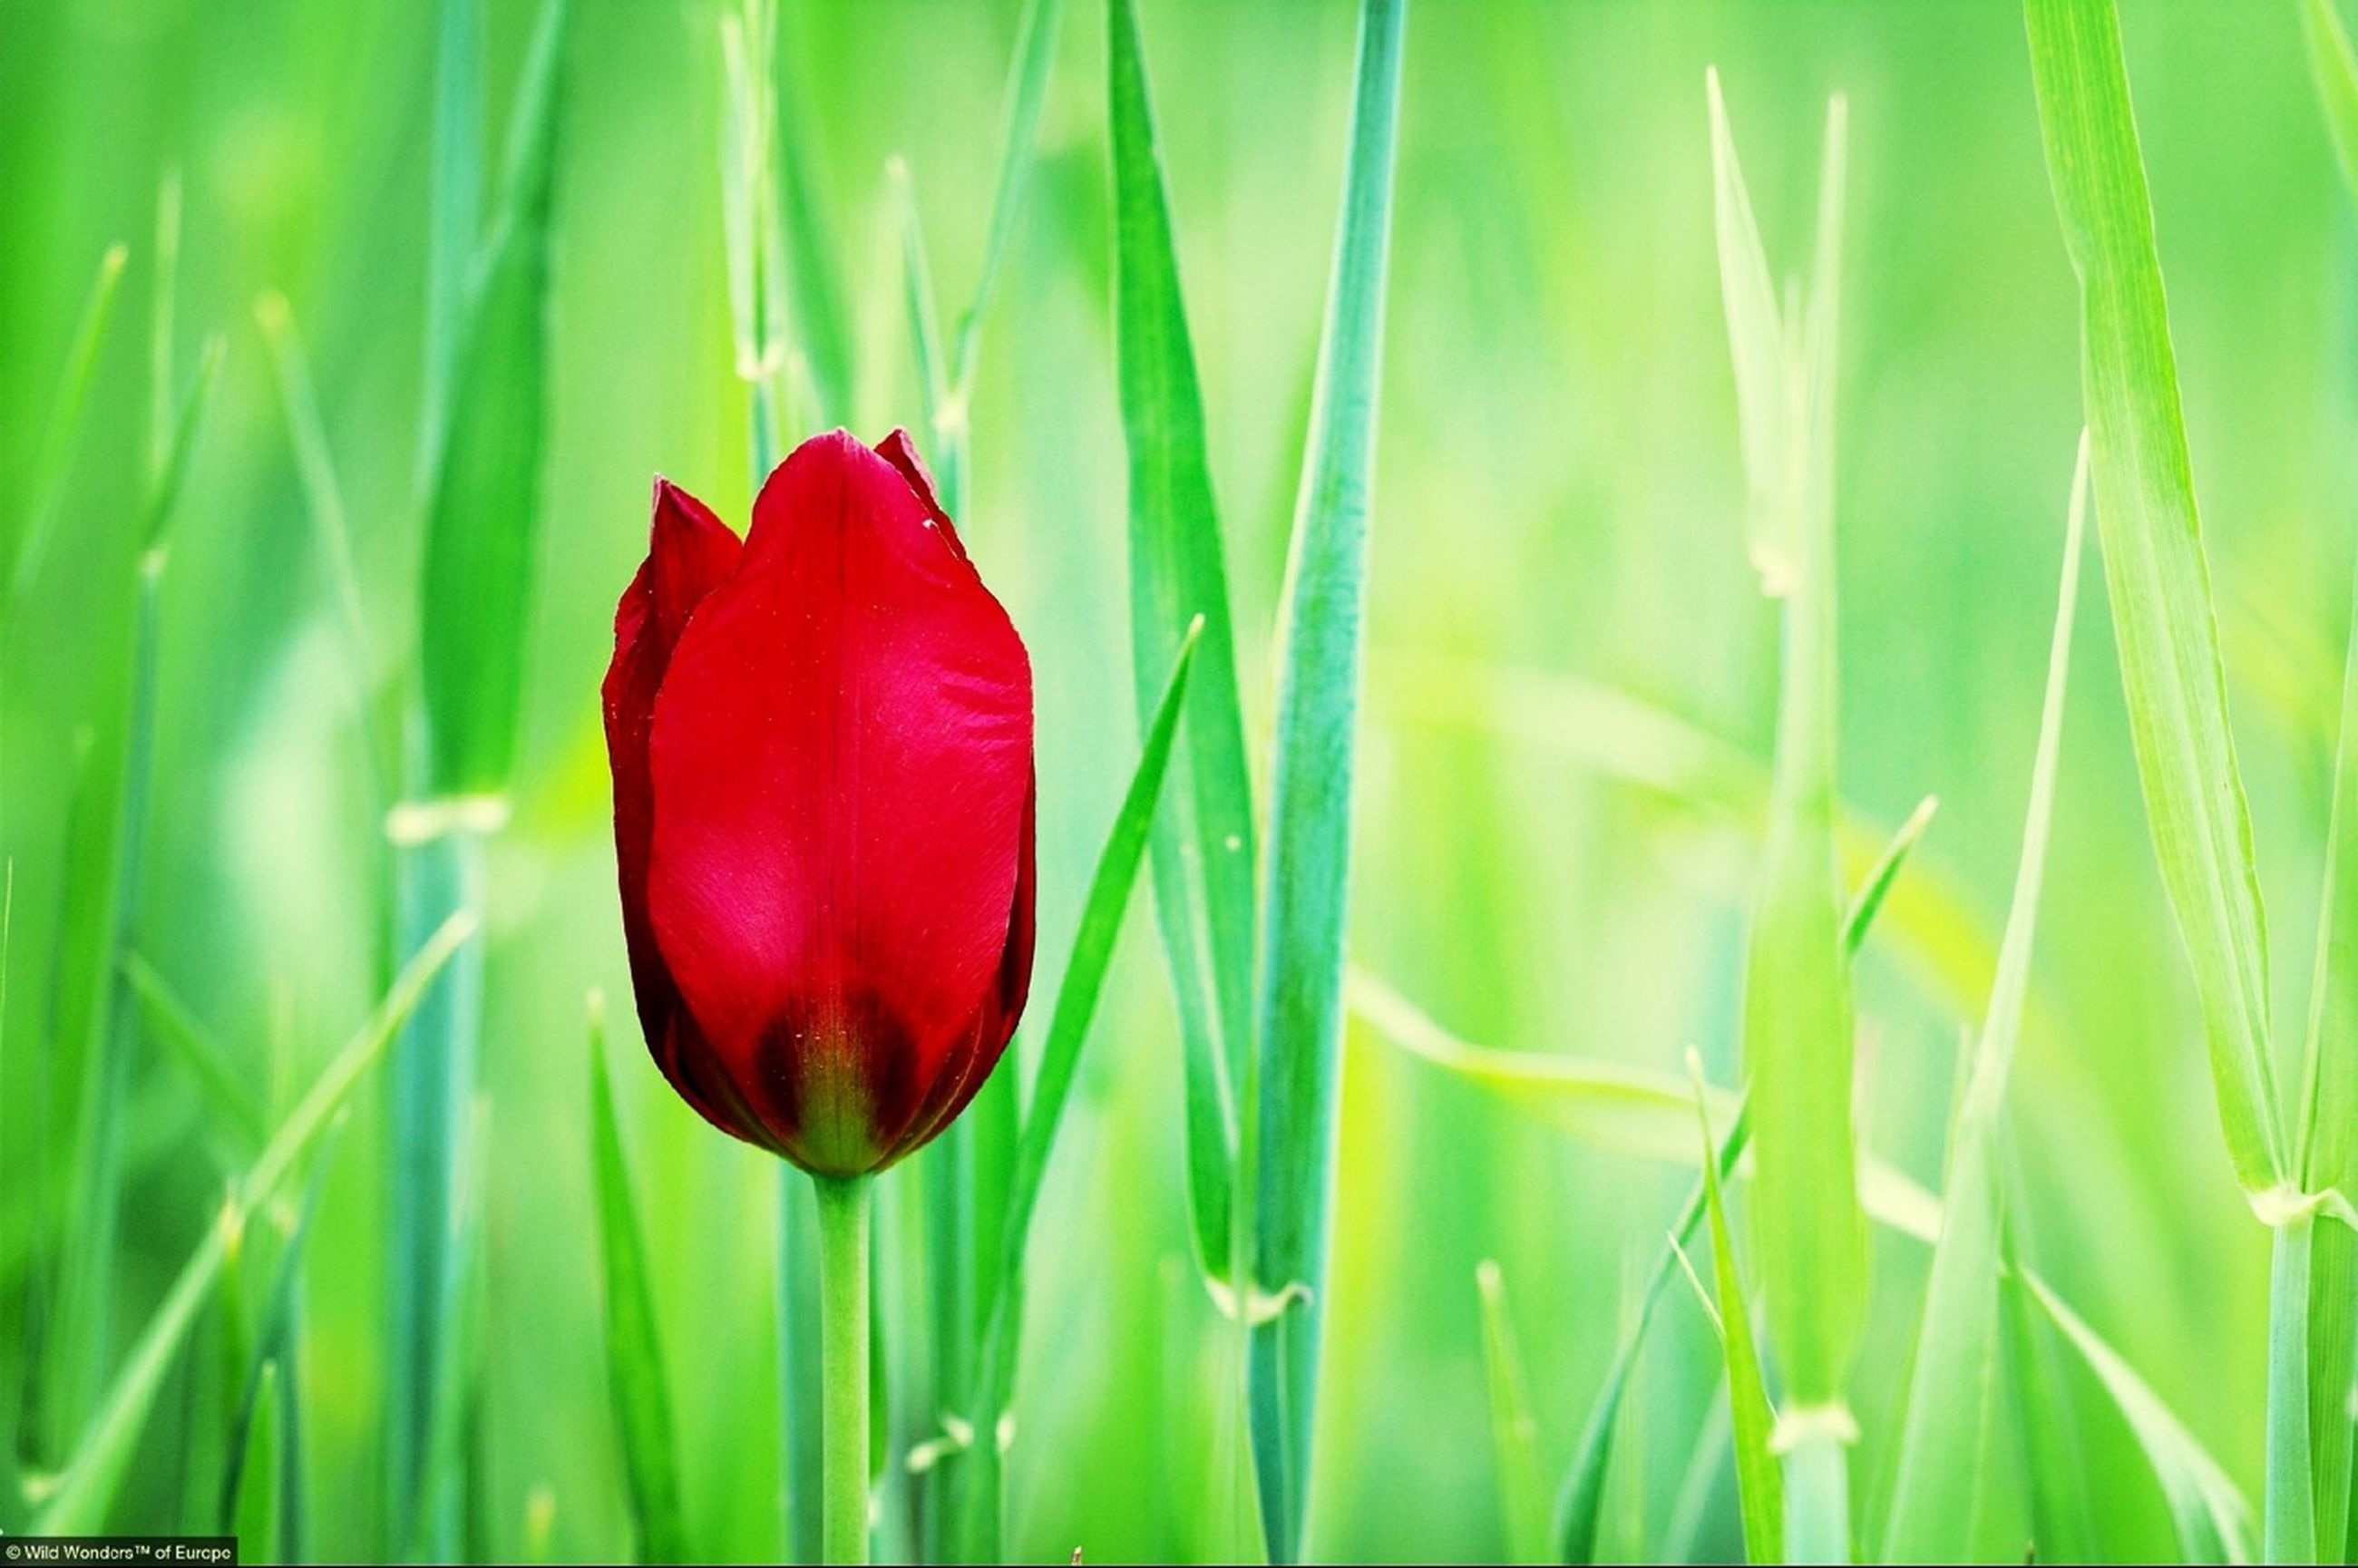 red, growth, freshness, plant, beauty in nature, flower, close-up, green color, nature, grass, field, fragility, stem, focus on foreground, poppy, bud, growing, selective focus, petal, leaf